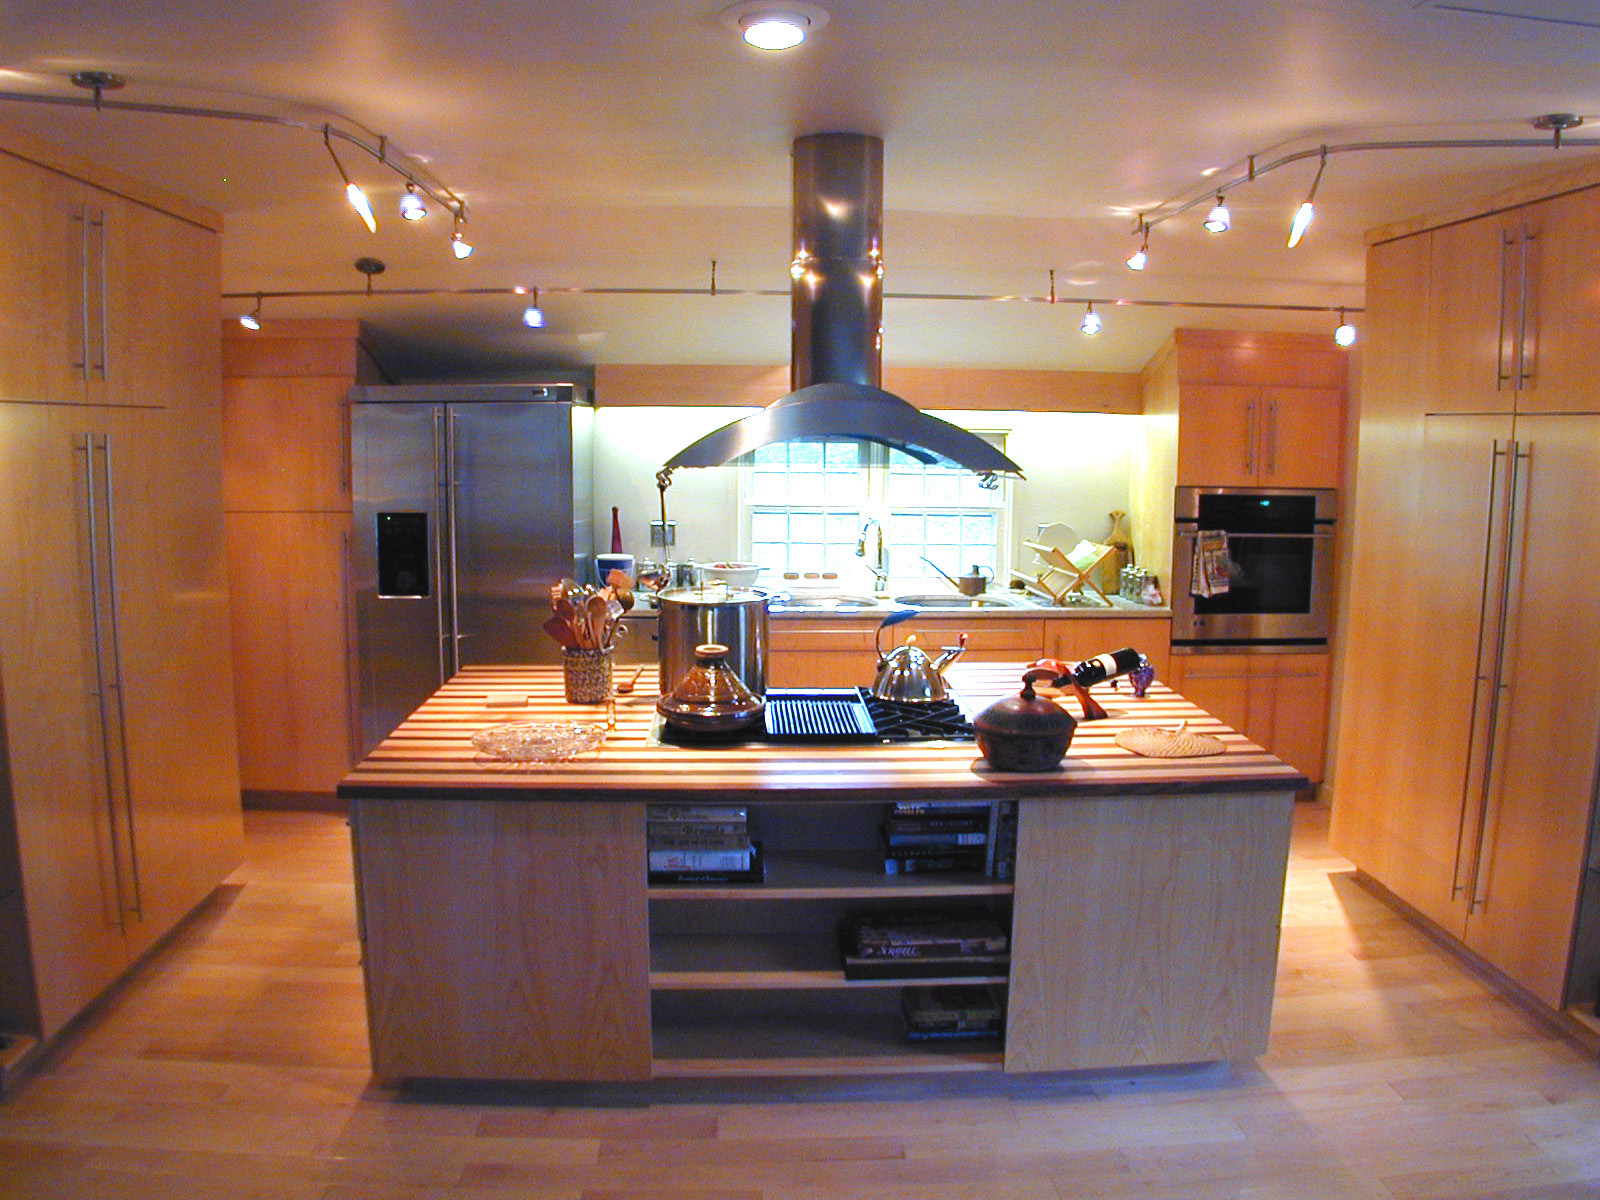 track lighting for kitchen View Larger Higher Quality Image